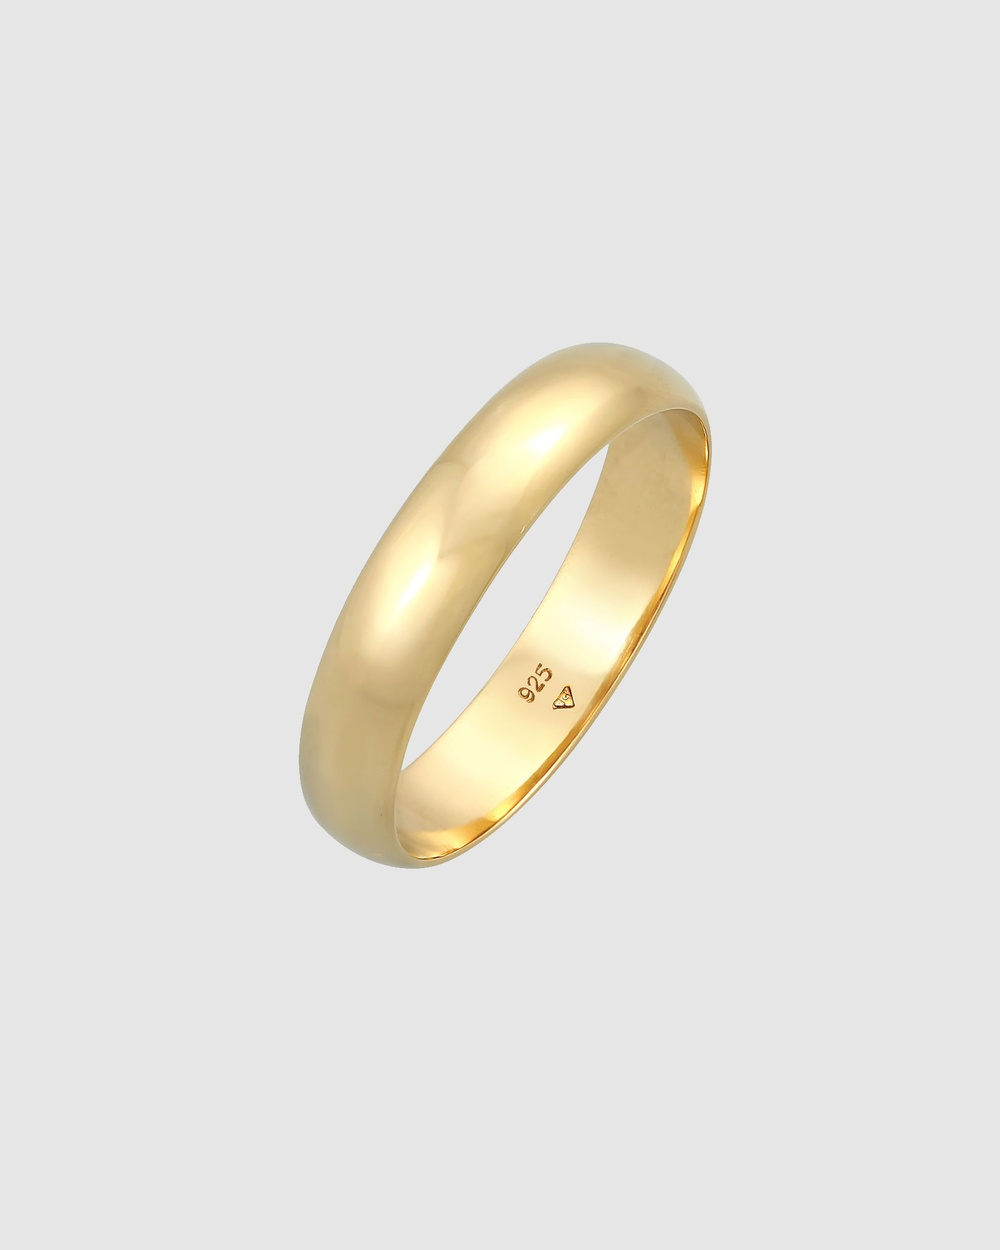 Elli Jewelry Ring Basic Band Casual Look in 925 Sterling Silver Gold Plated Jewellery Gold